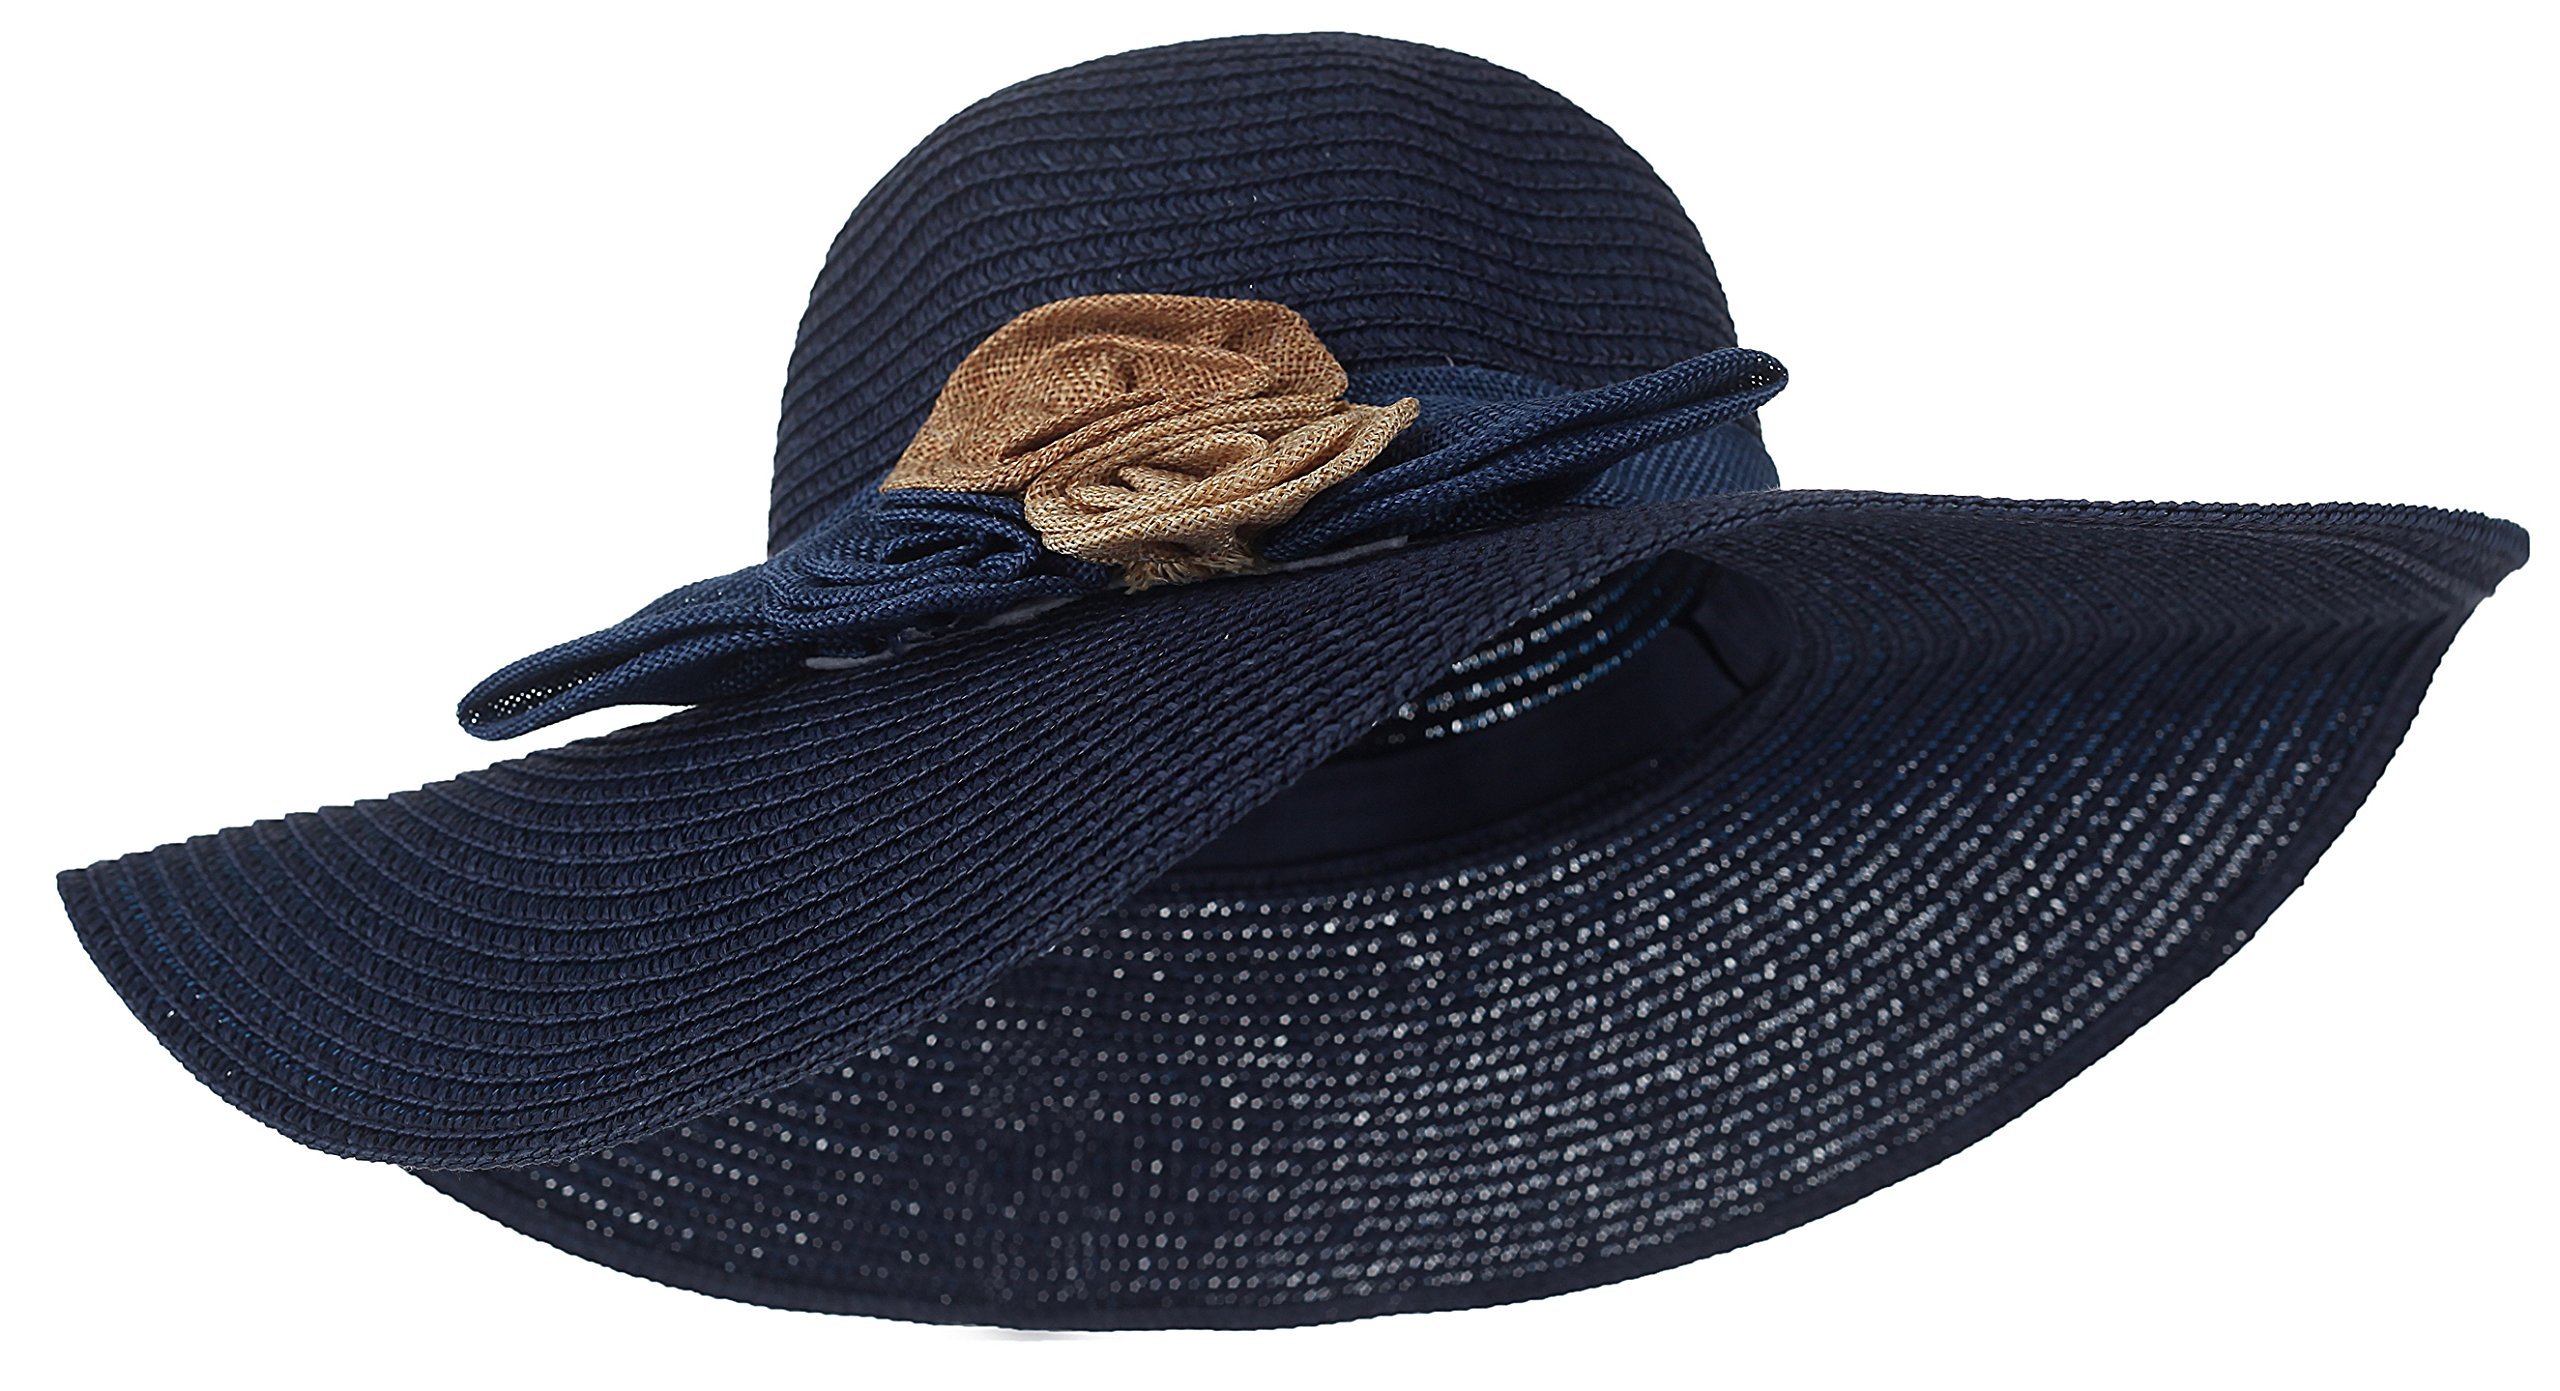 Kaisifei Summer Girls Sweet Big Flower Straw Hats (navy blue-2)